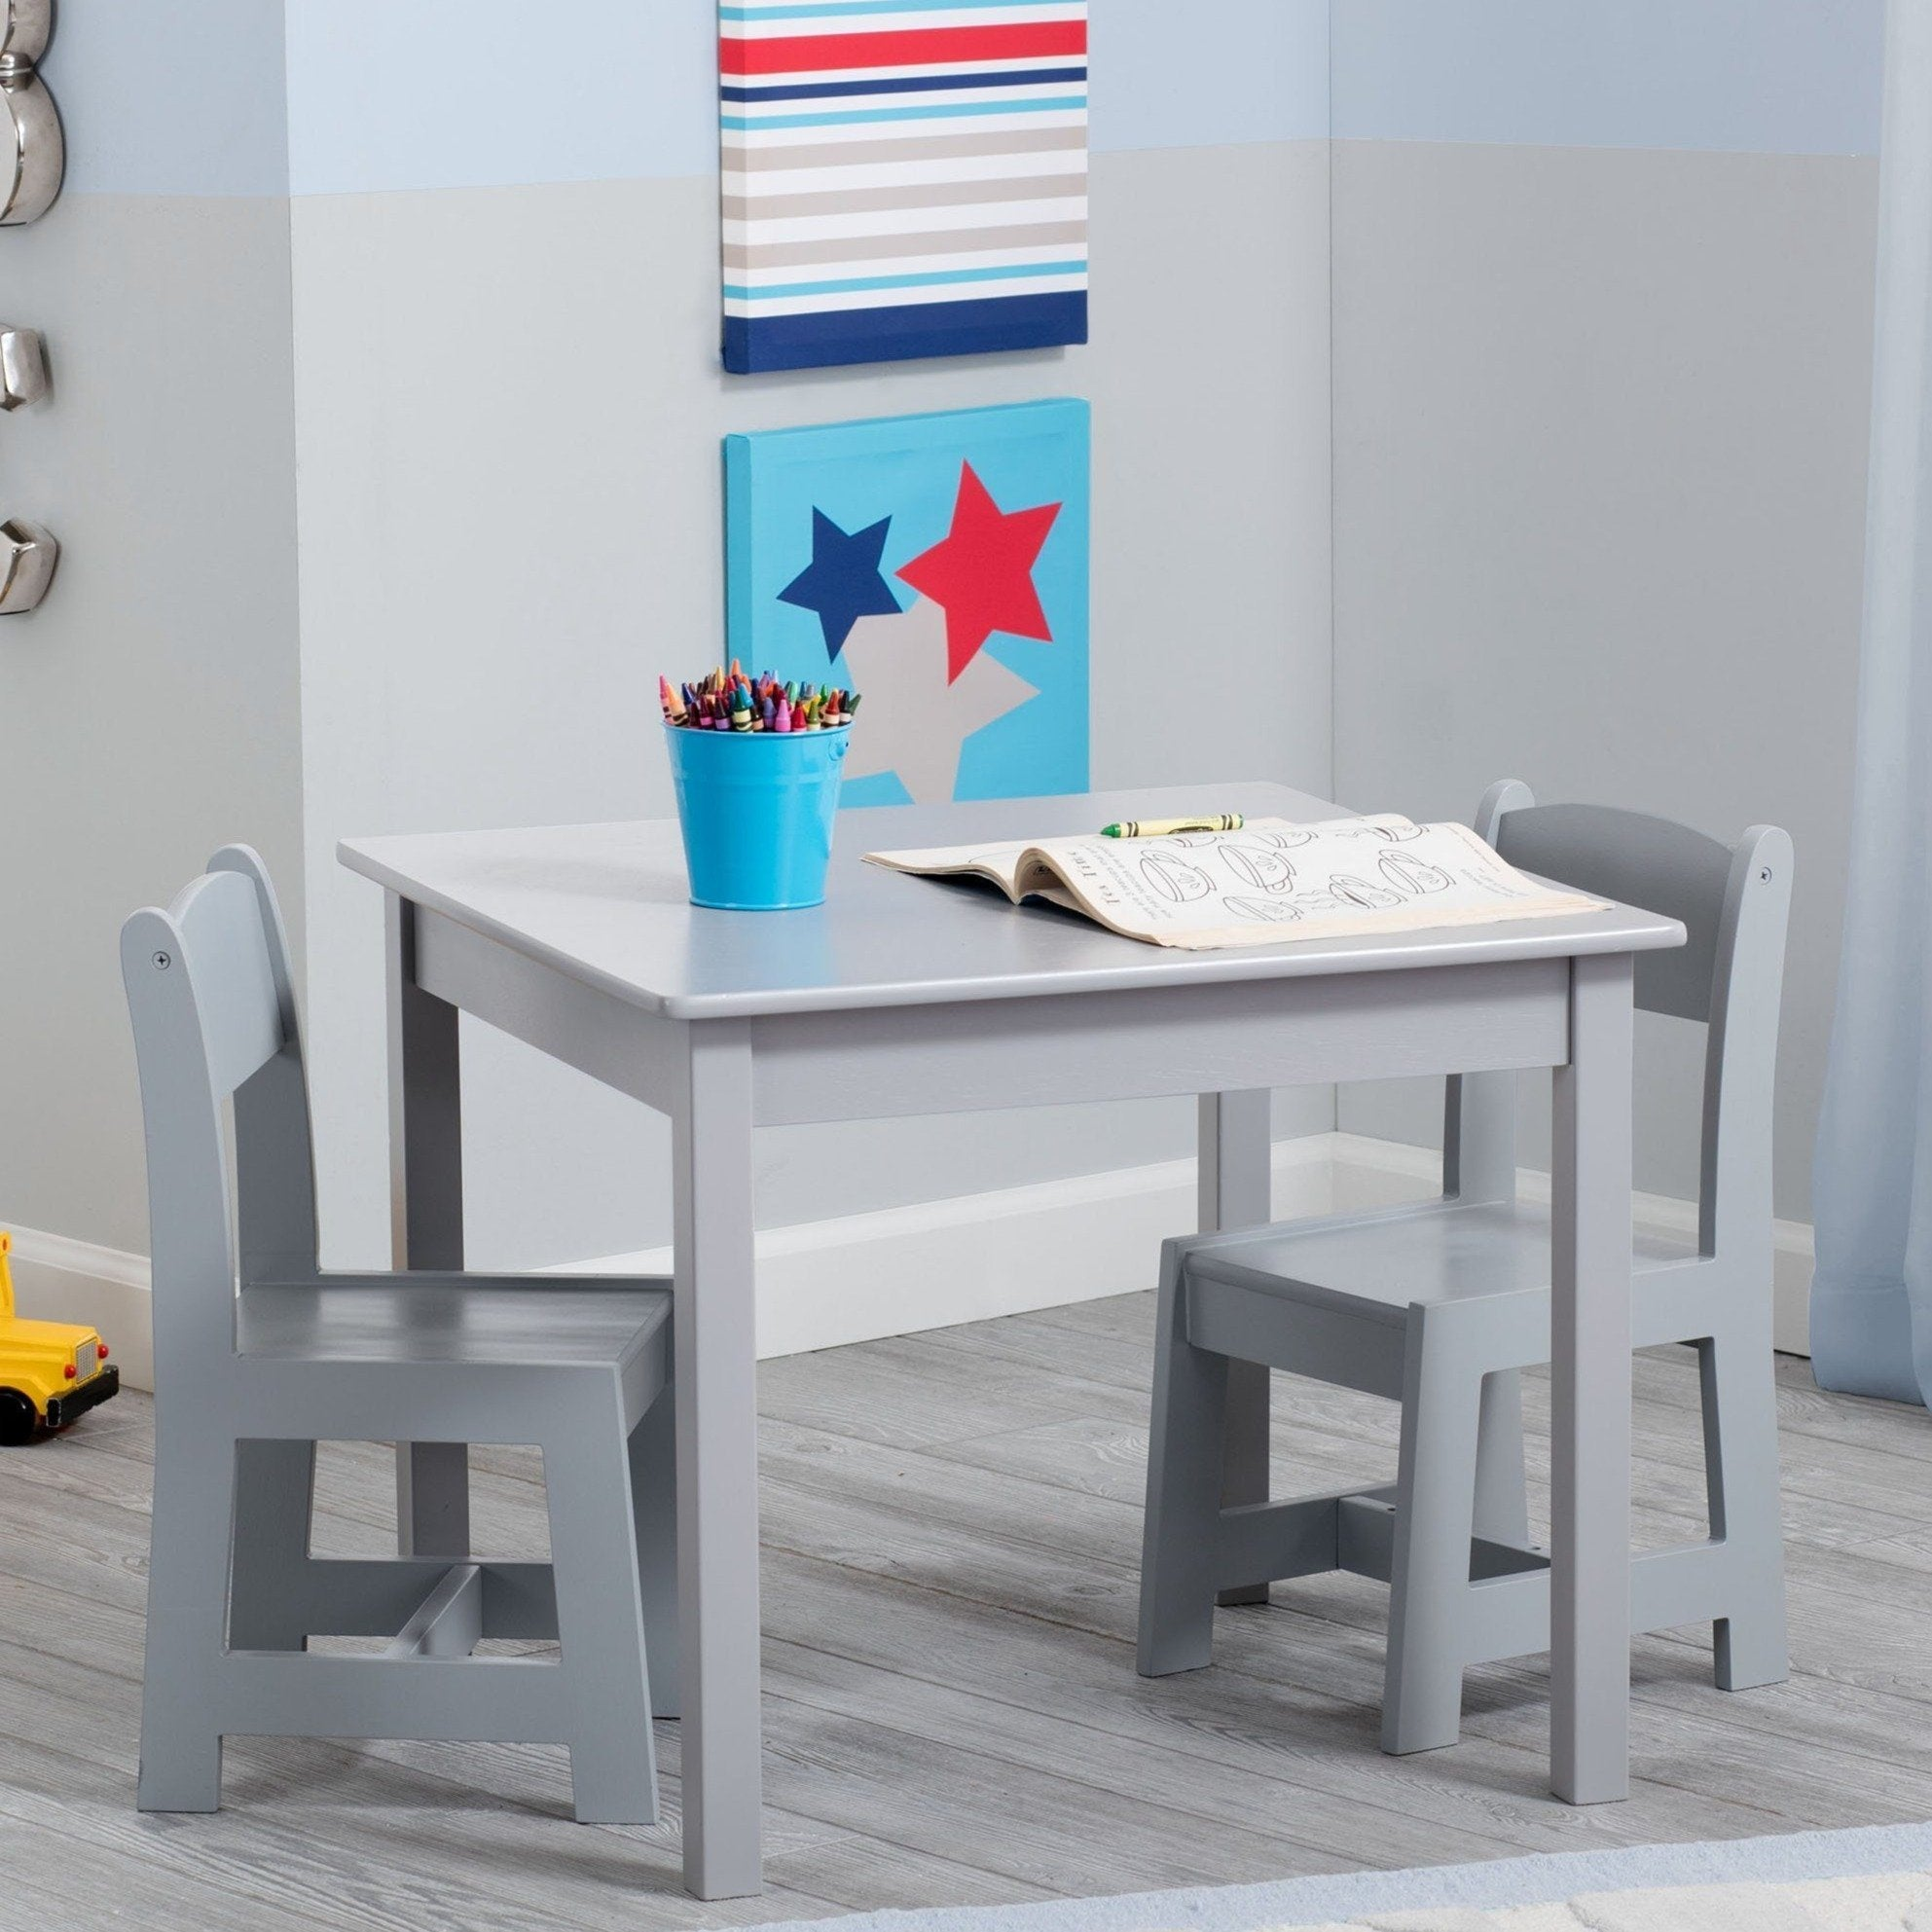 Delta Children Grey (026) MySize Table & Chairs Set, Room, a1a